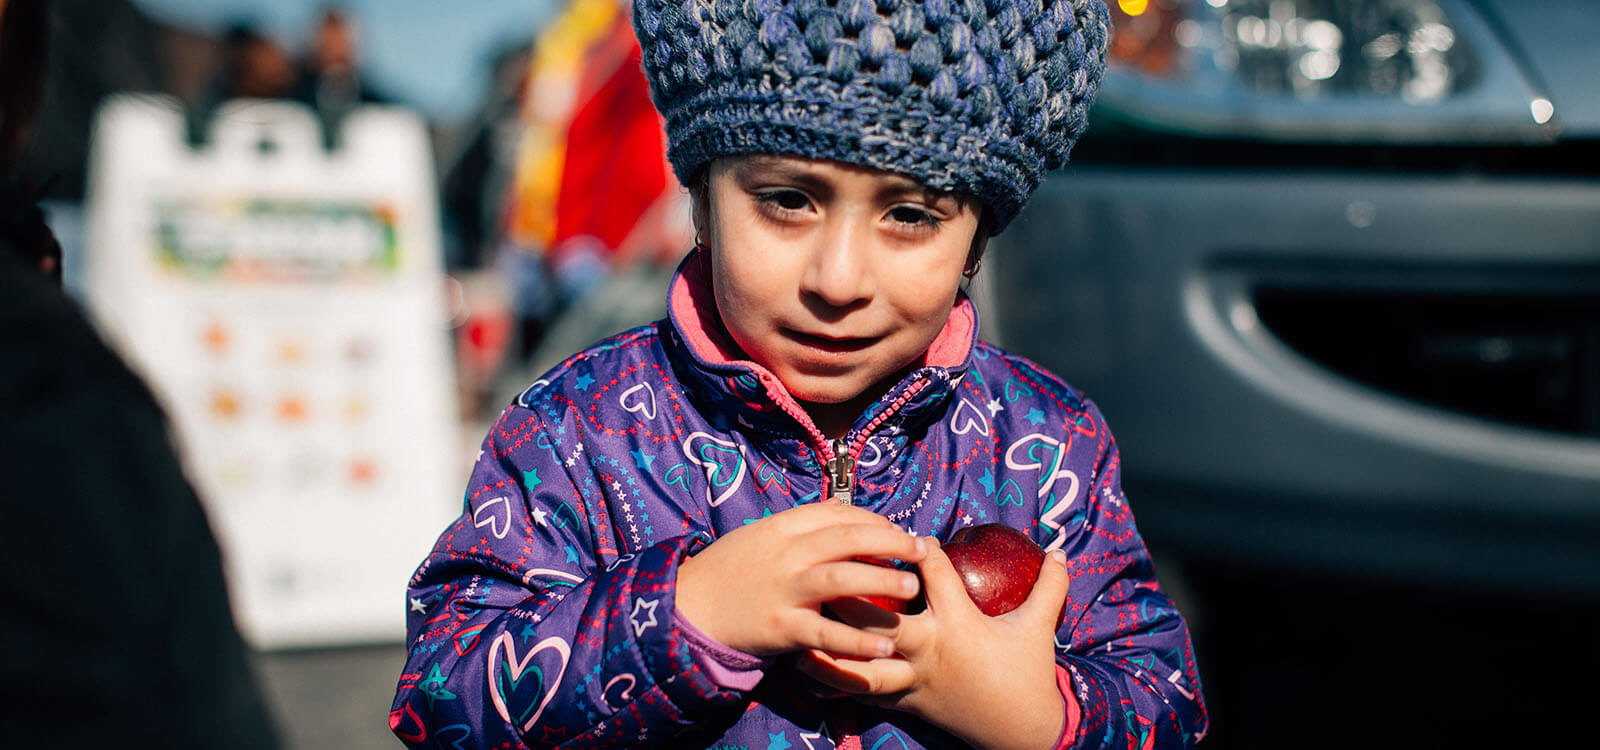 A child holding apples at a FRESH Truck